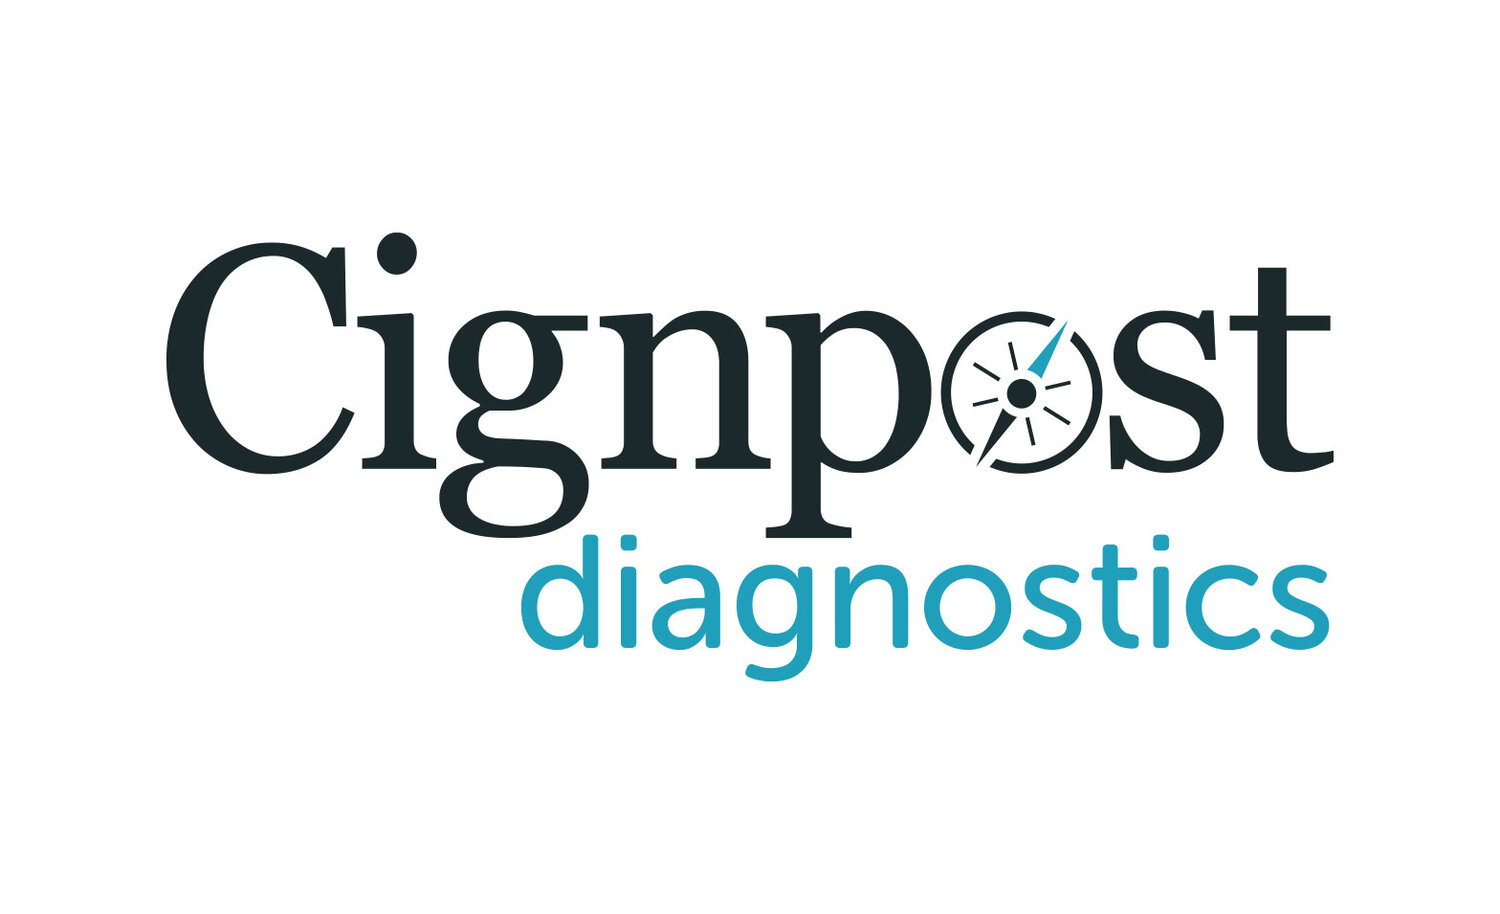 Cignpost Diagnostics